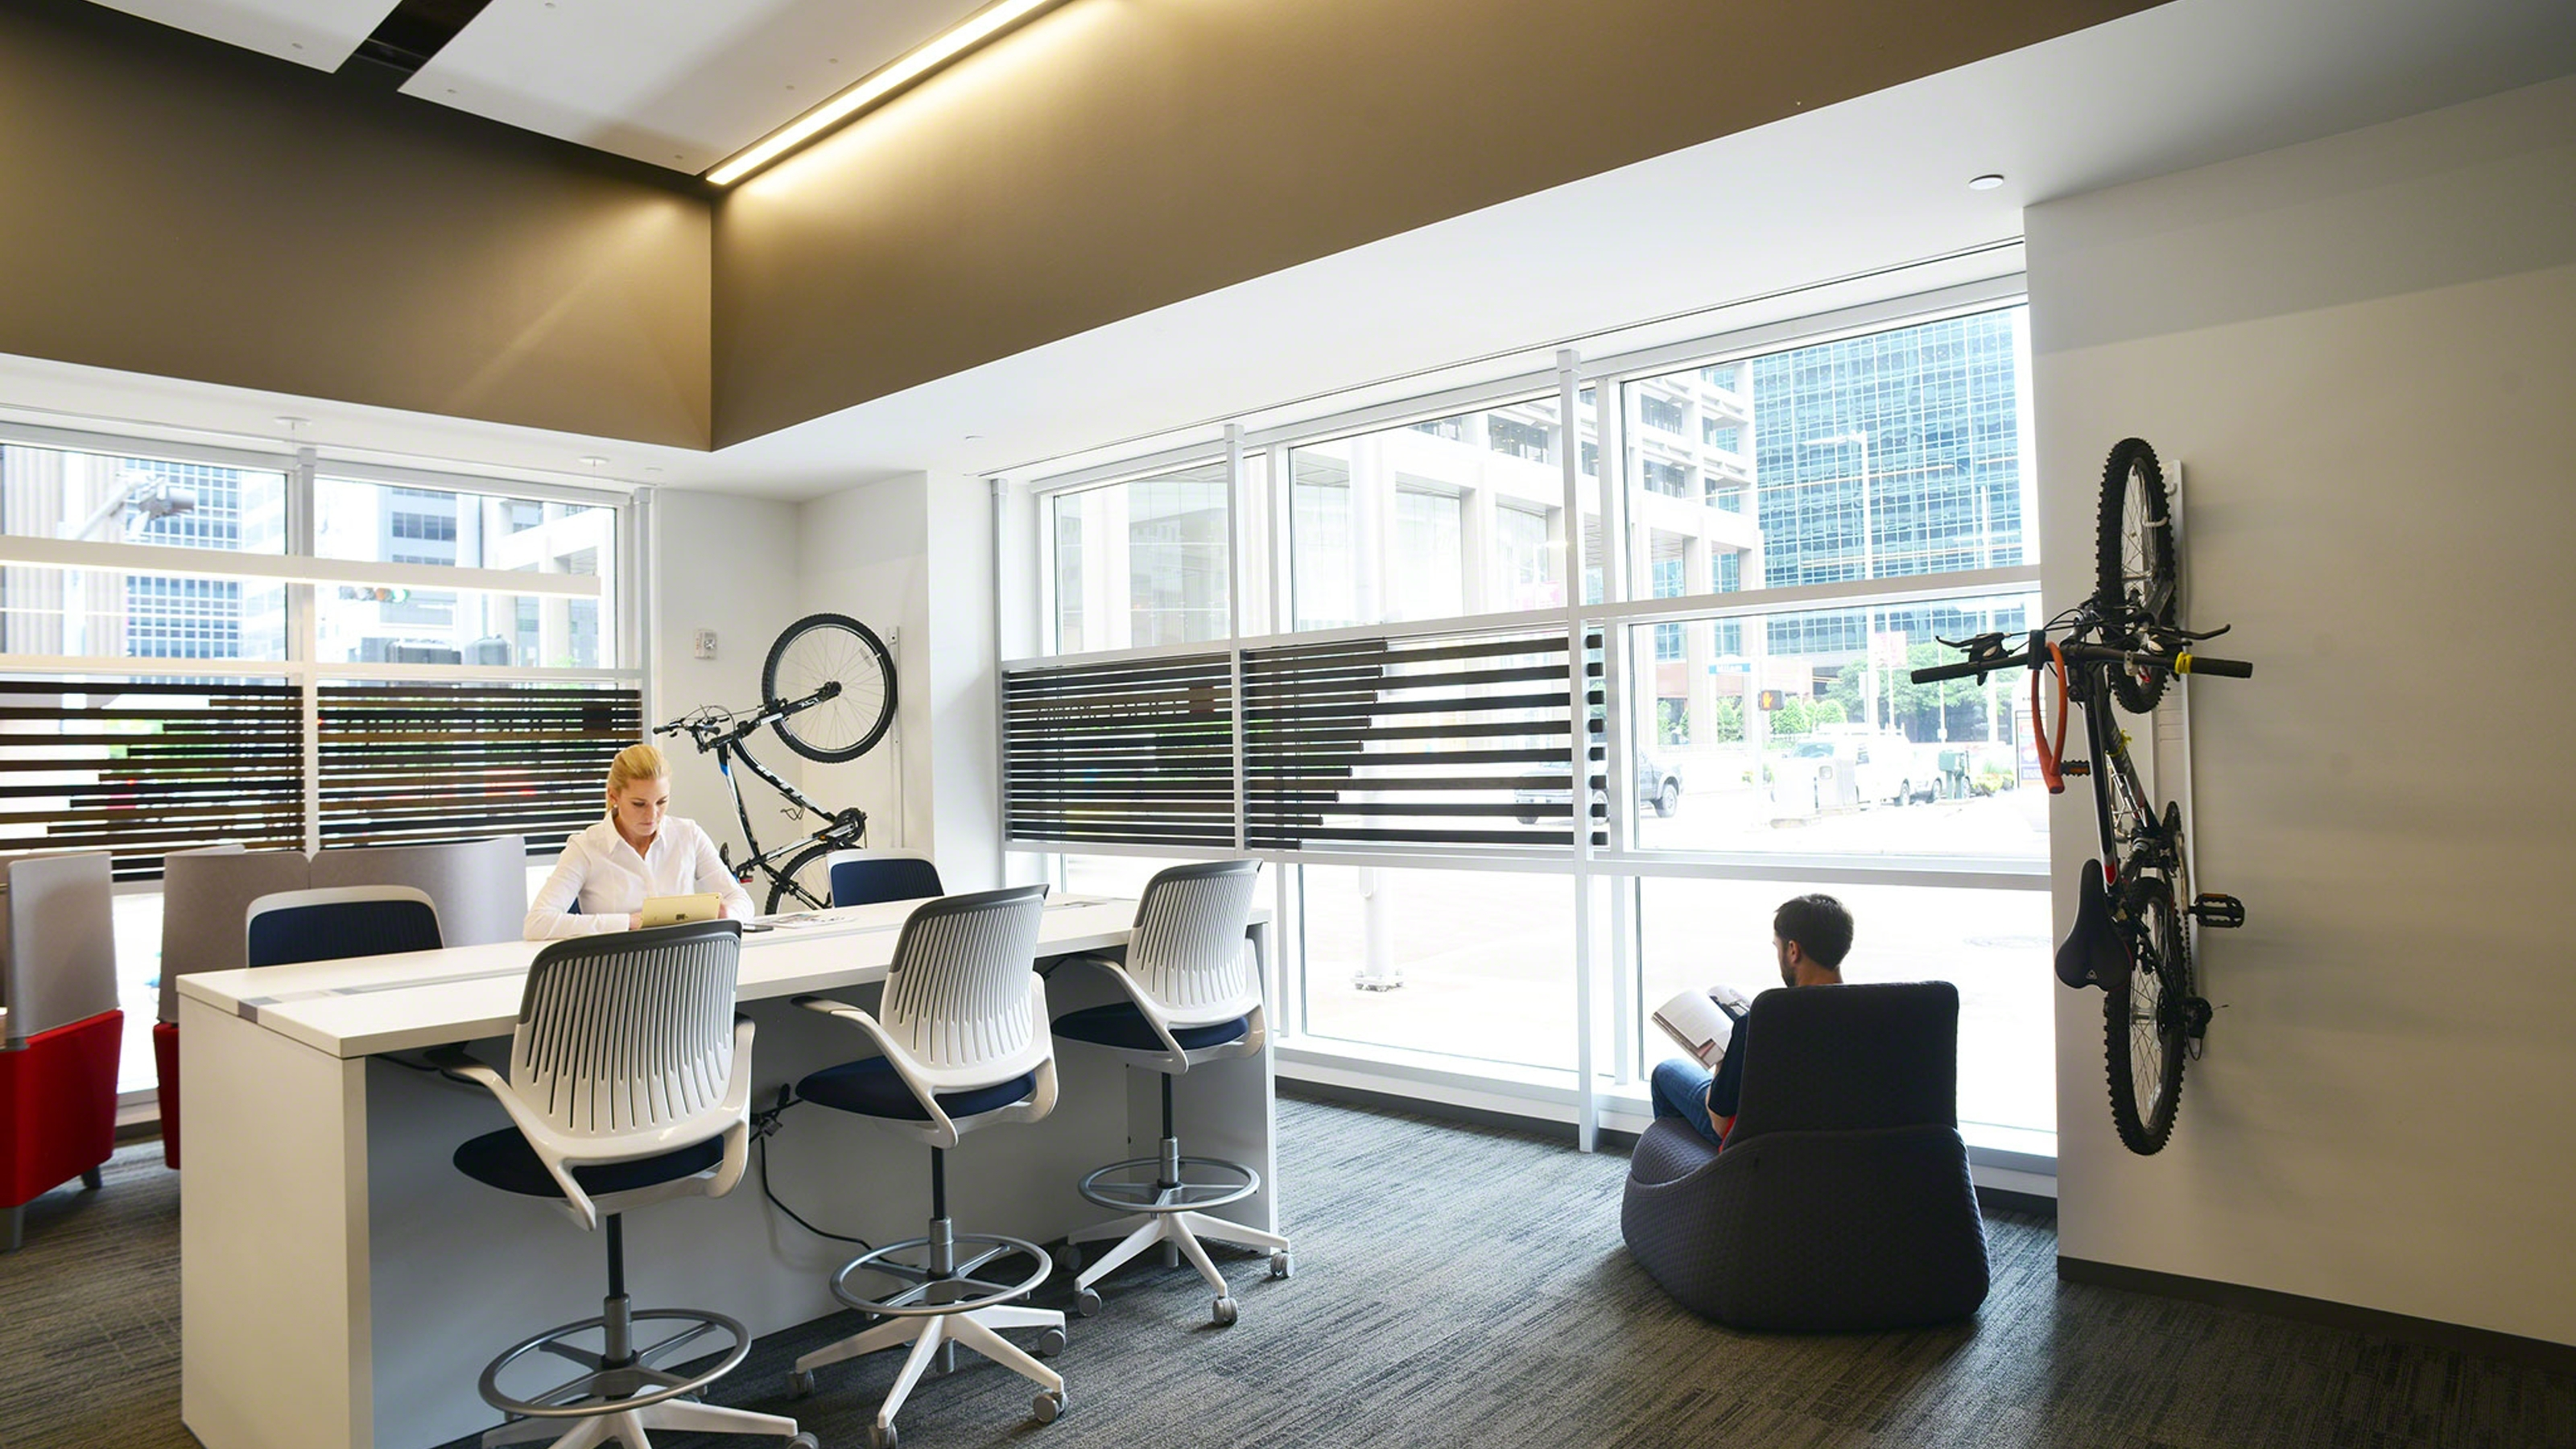 How To Design Spaces For People With >> Creating Authentic Inspiring Spaces For Designers Steelcase